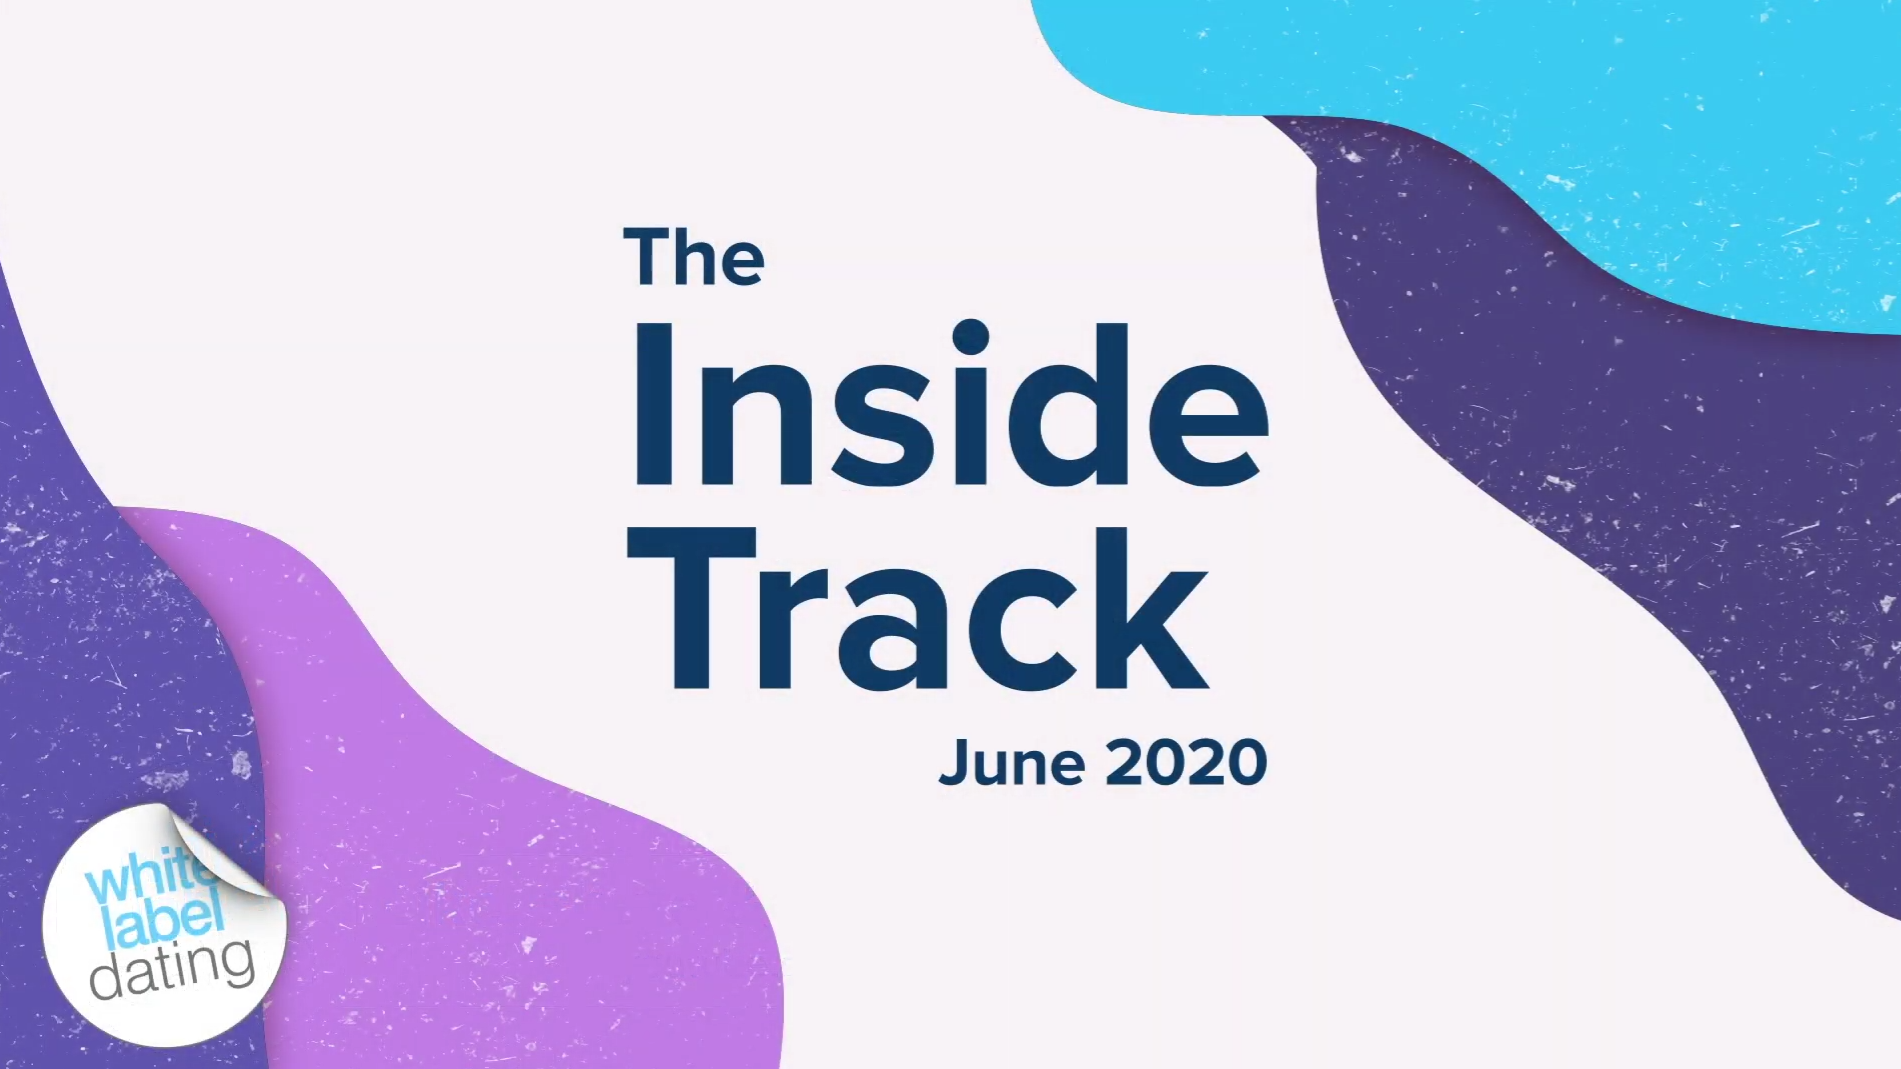 The Inside Track June 2020